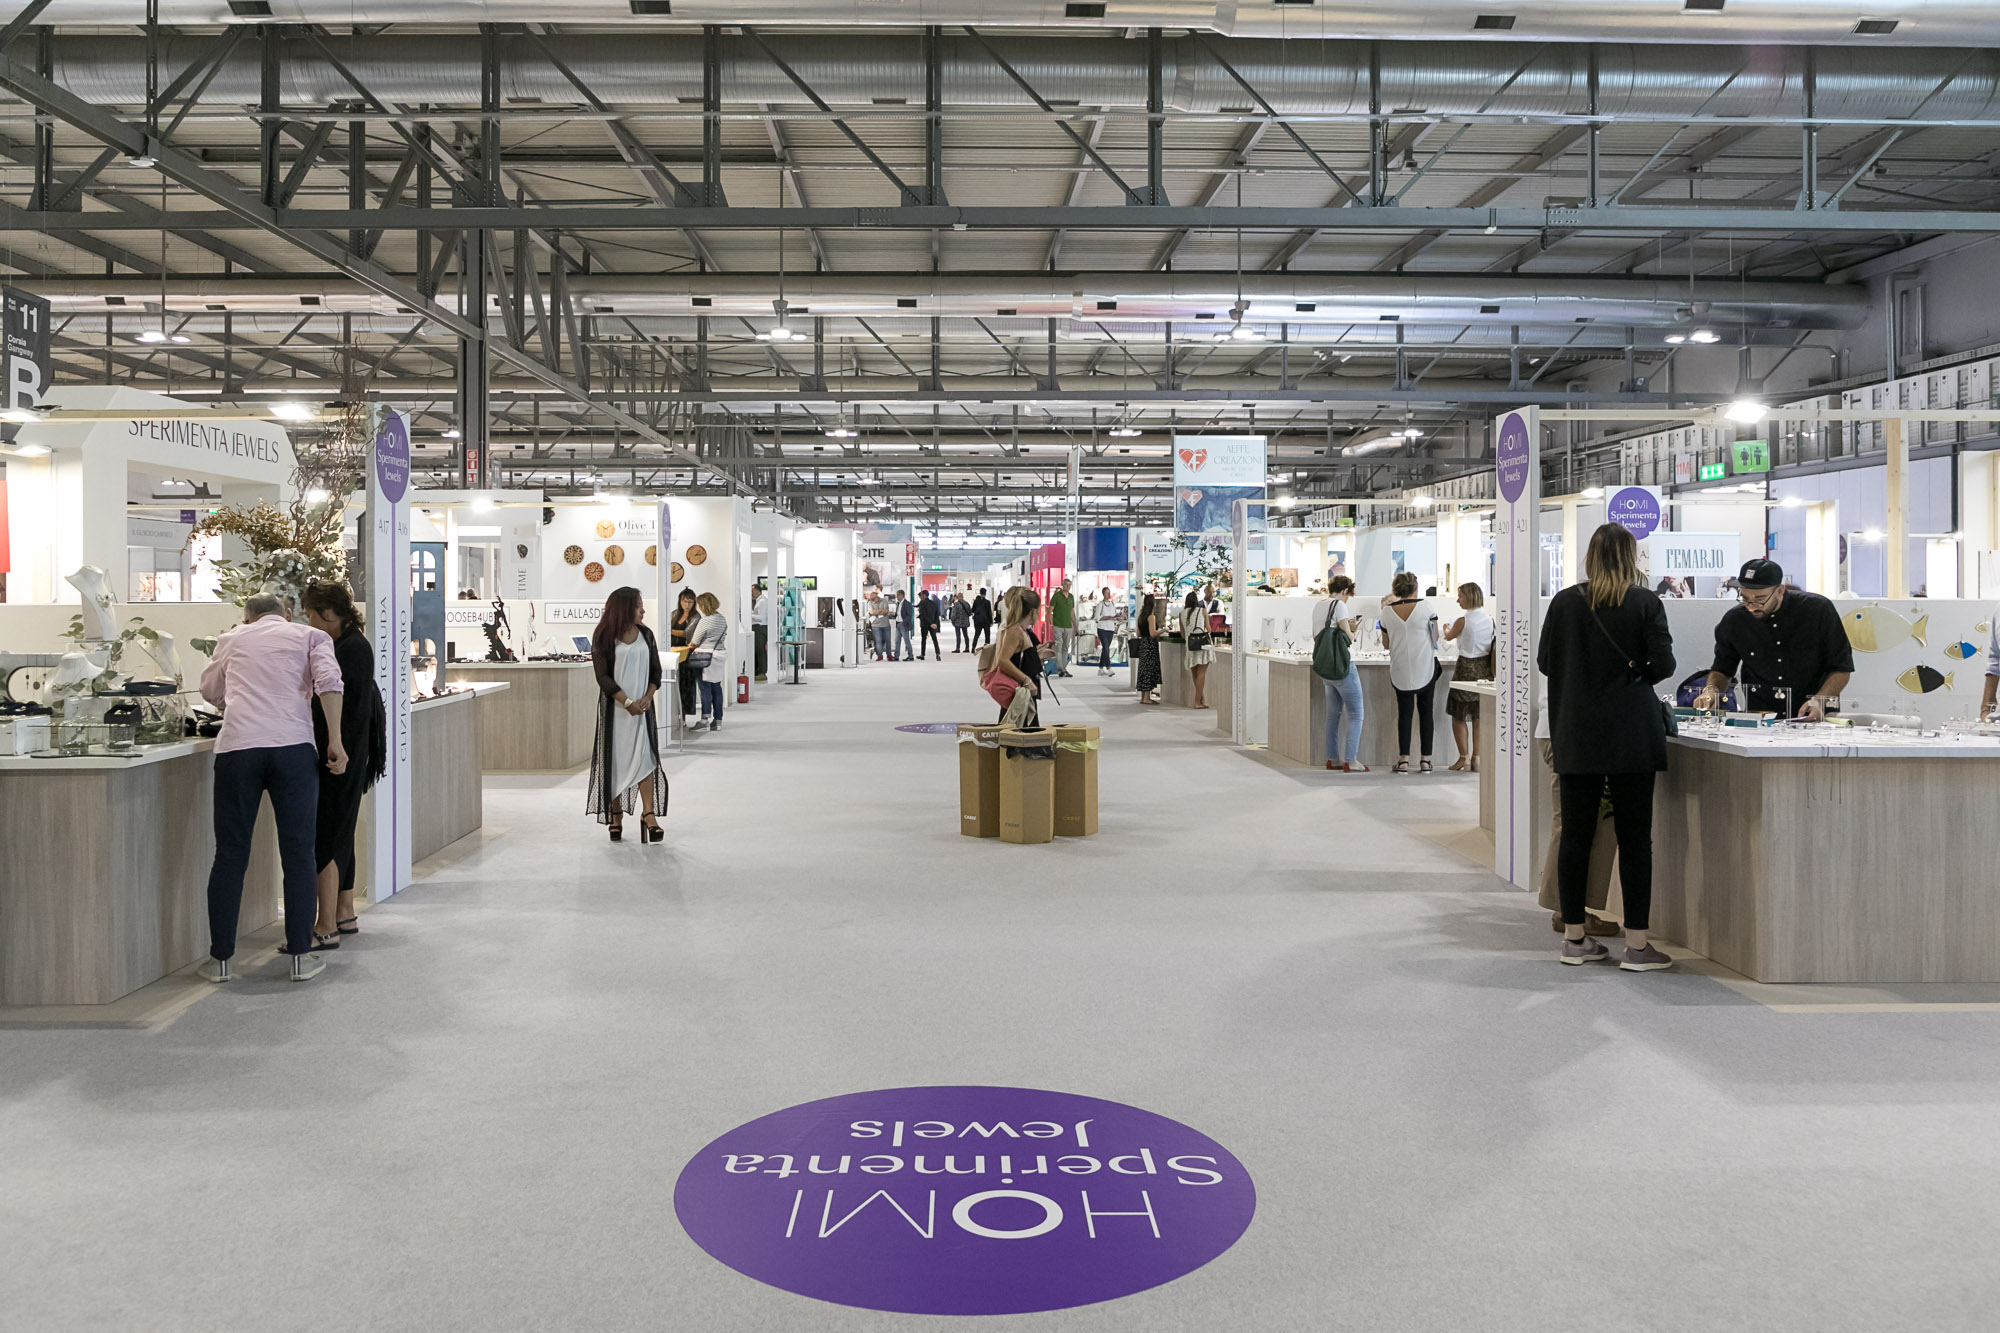 The atmosphere at the Homi Fashion&Jewels trade show in September.